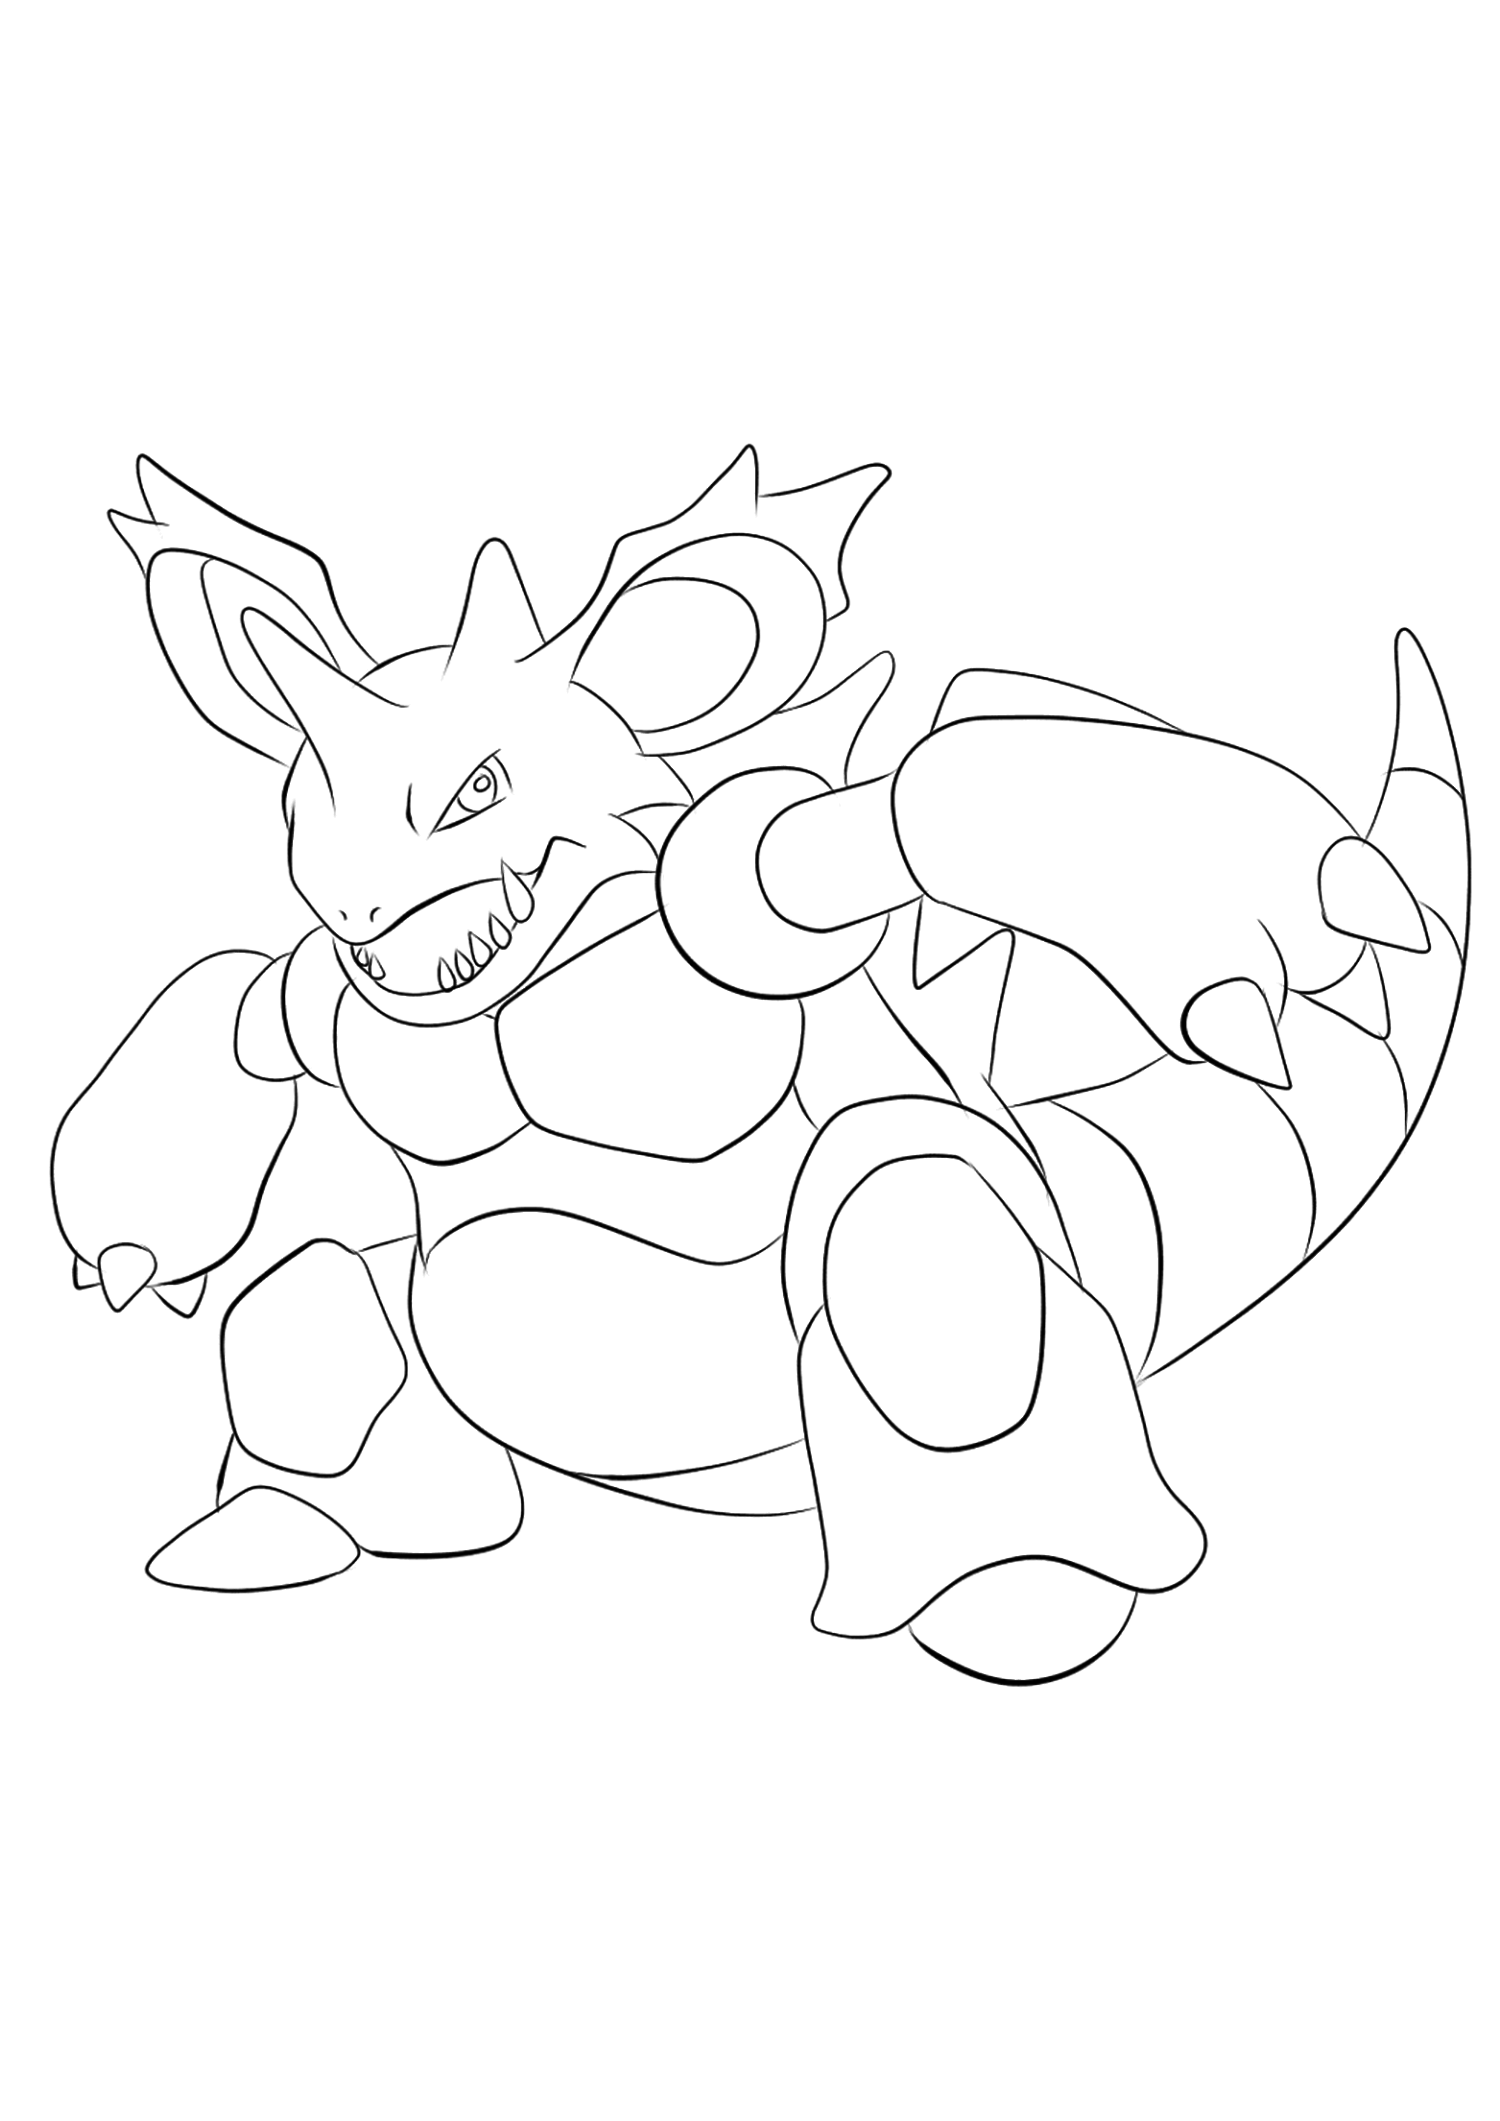 Nidoking (No.34)Coloriage de Nidoking (Nidoking), Pokémon de Génération I, de type : Poison et SolOriginal image credit: Pokemon linearts by Lilly Gerbil'font-size:smaller;color:gray'>Permission: All rights reserved © Pokemon company and Ken Sugimori.